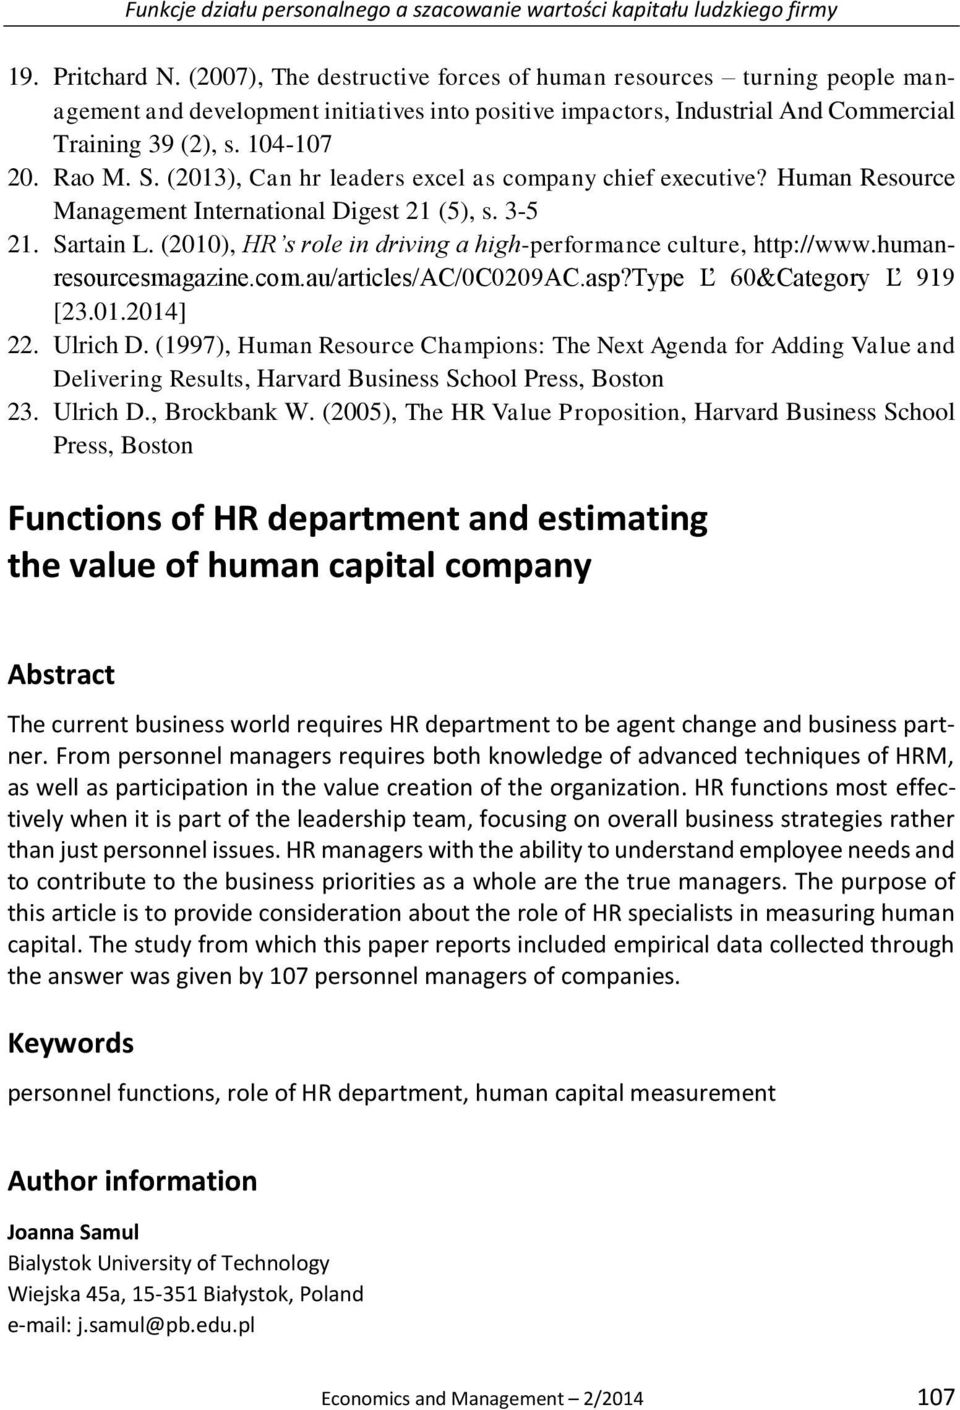 (2013), Can hr leaders excel as company chief executive? Human Resource Management International Digest 21 (5), s. 3-5 21. Sartain L.